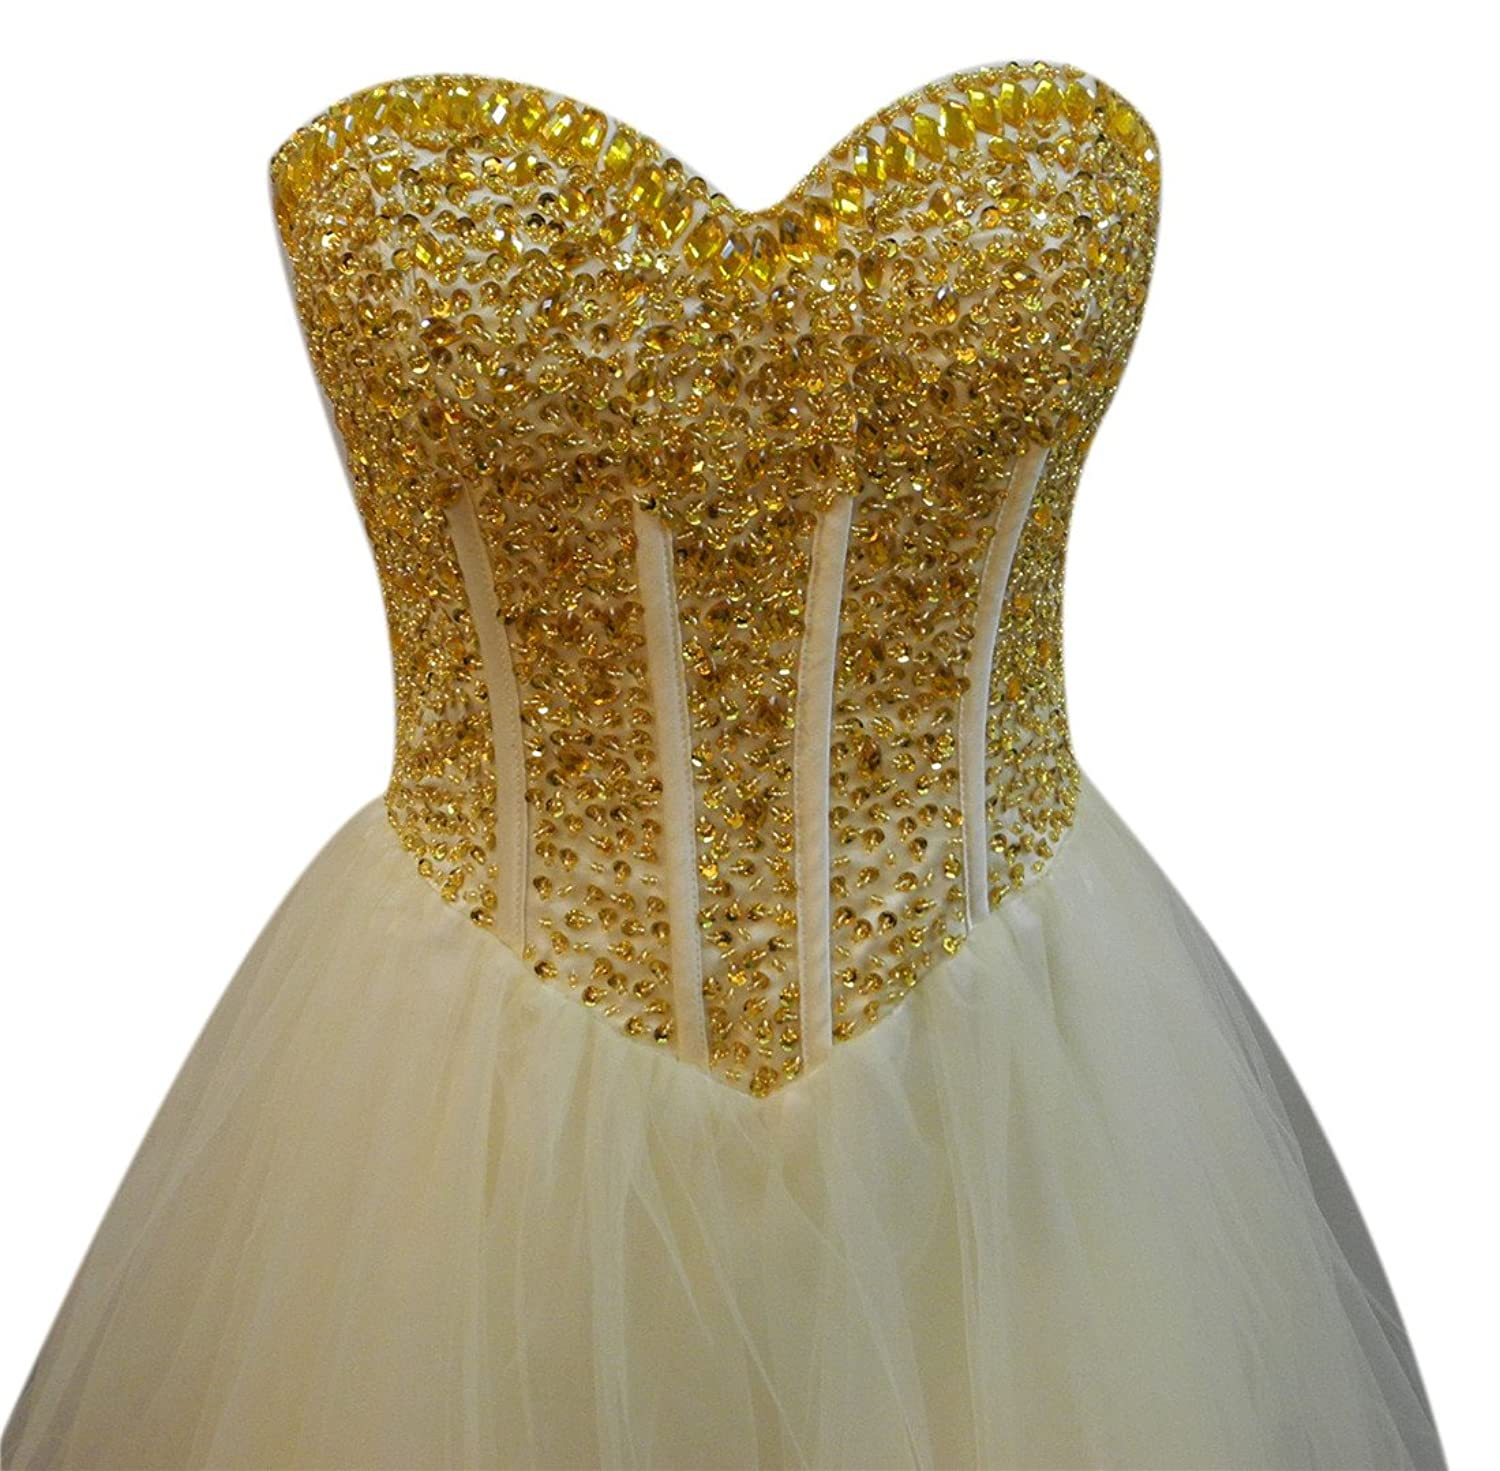 AngelDragon Strapless Rhinestones Beading Short Tulle Cocktail Party Dresses